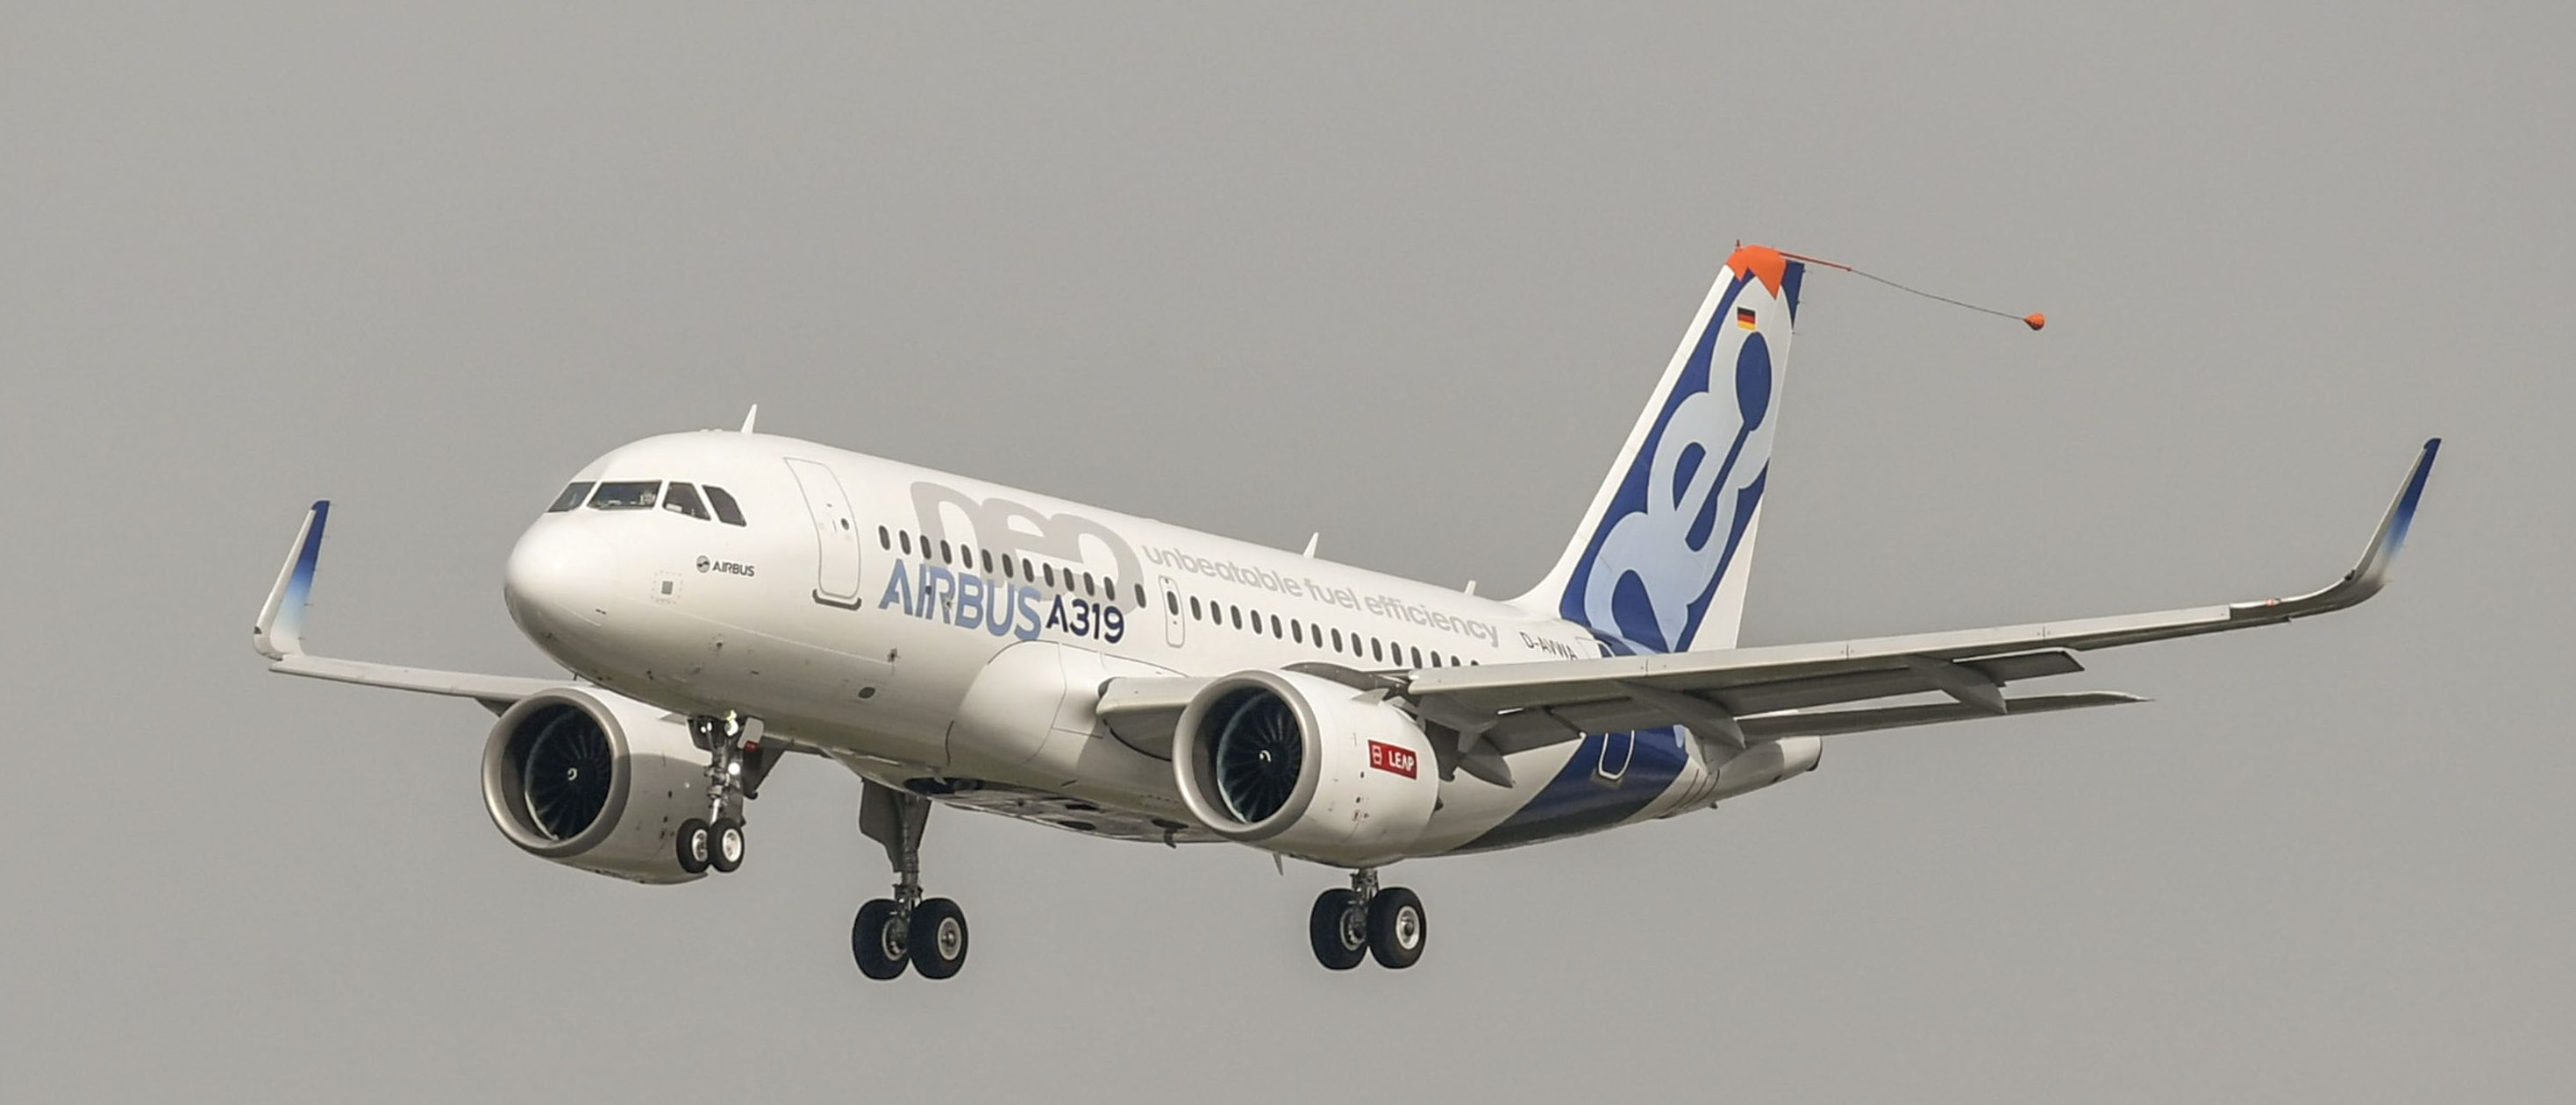 The Airbus A319neo takes to the skies